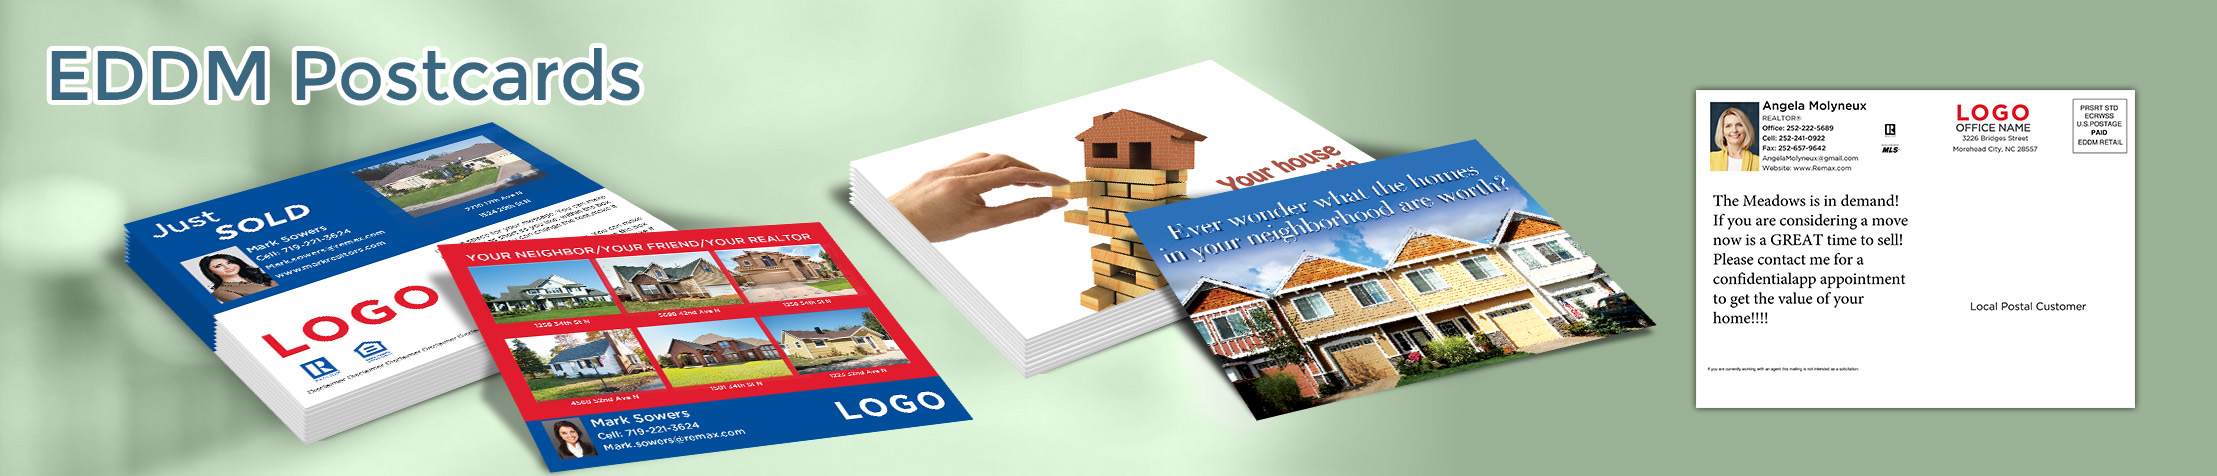 RE/MAX Real Estate EDDM Postcards - RE/MAX personalized Every Door Direct Mail Postcards | BestPrintBuy.com